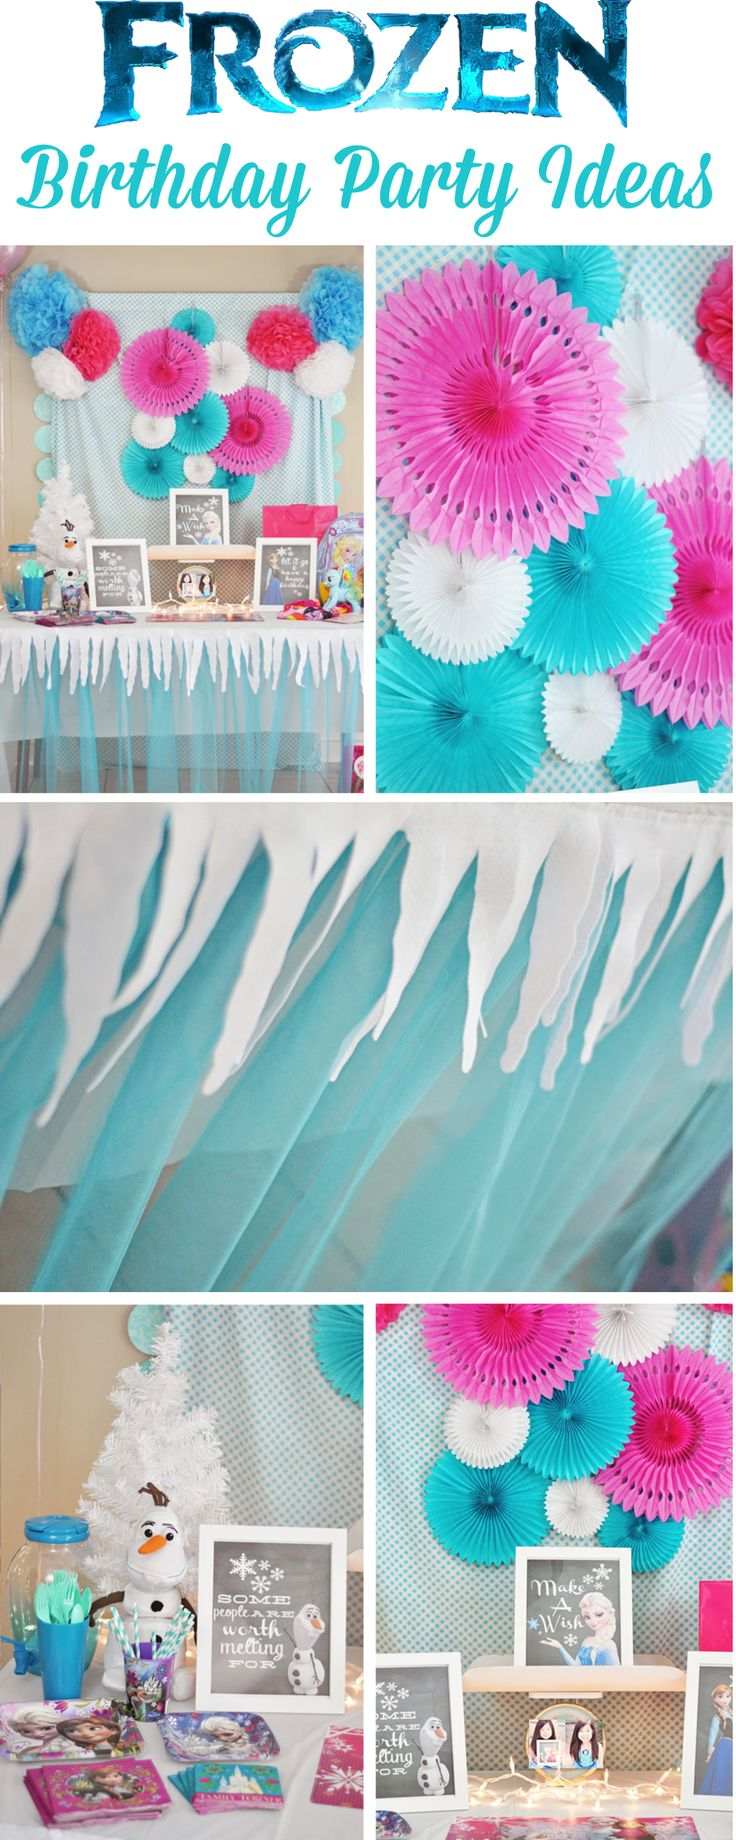 DIY ideas for a Frozen inspired birthday party